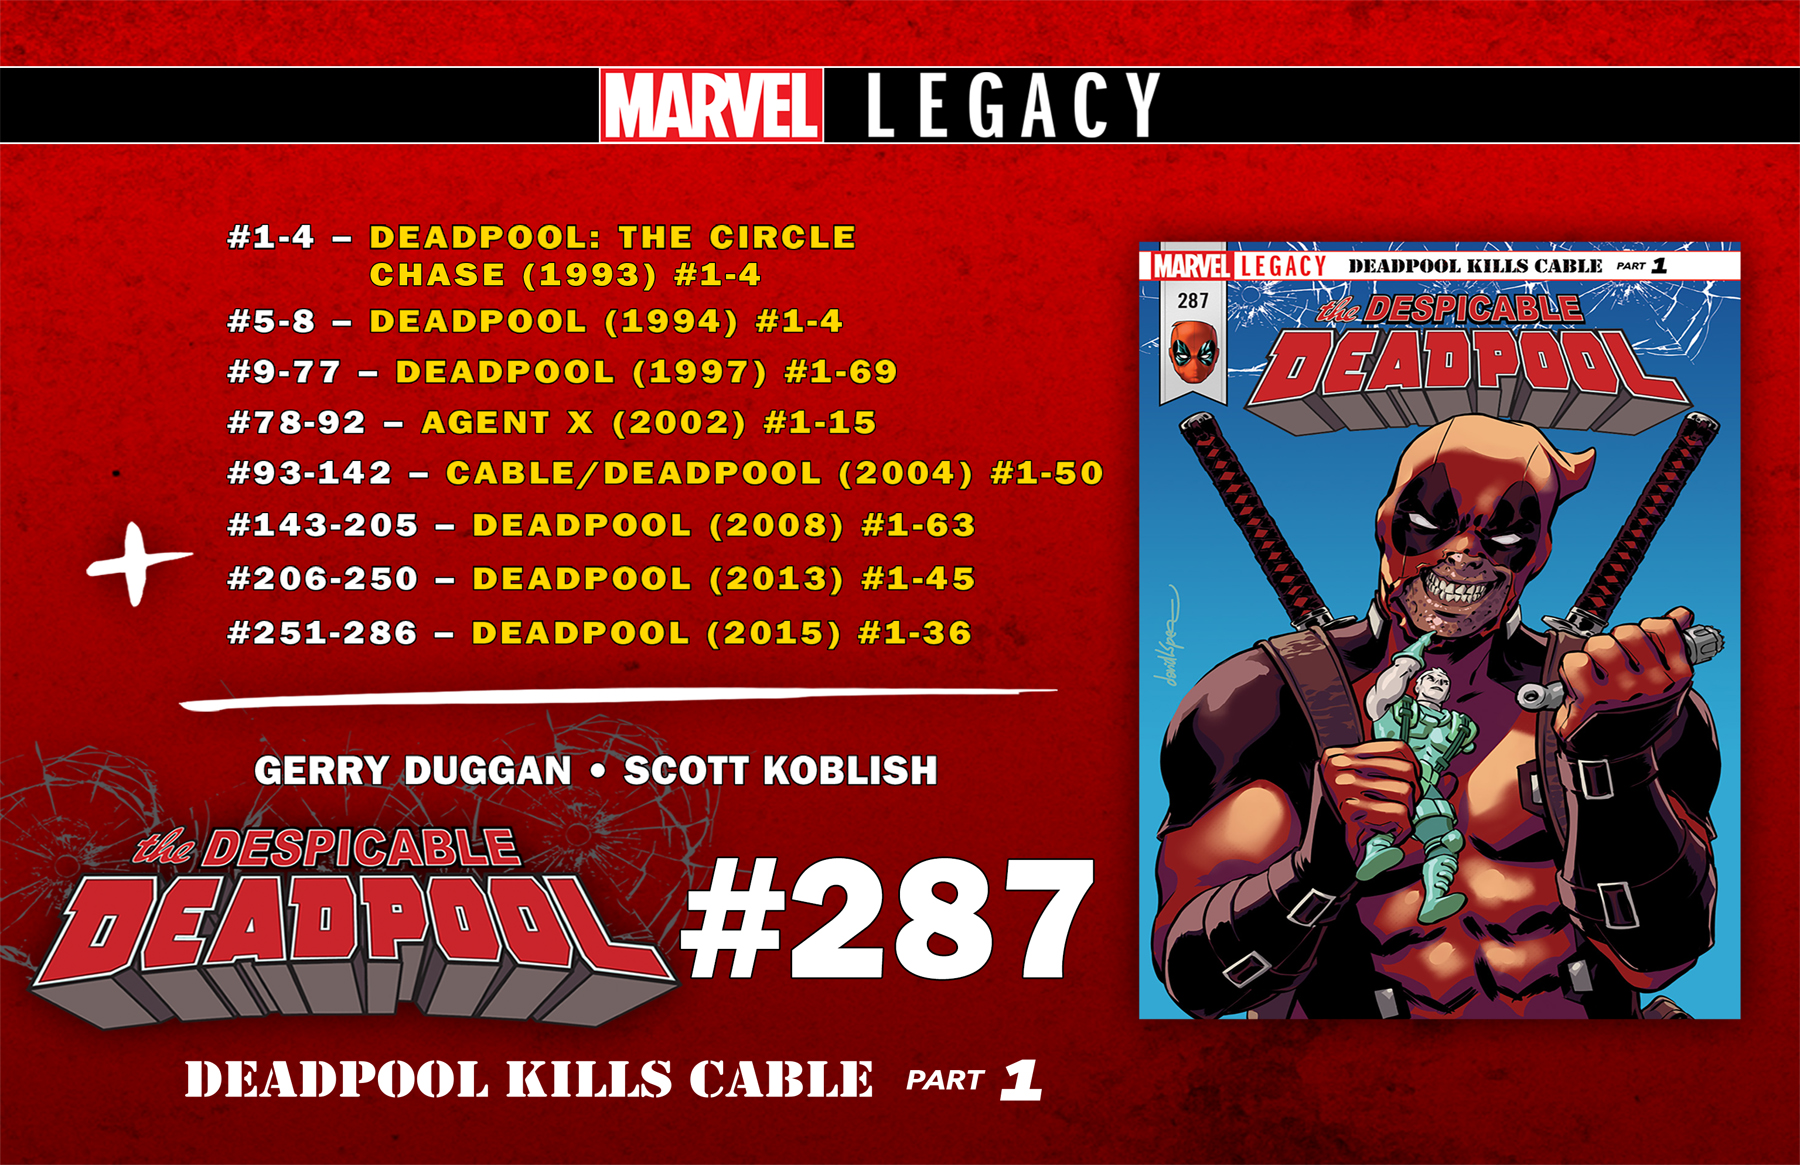 DESPICABLE DEADPOOL #287 LEG